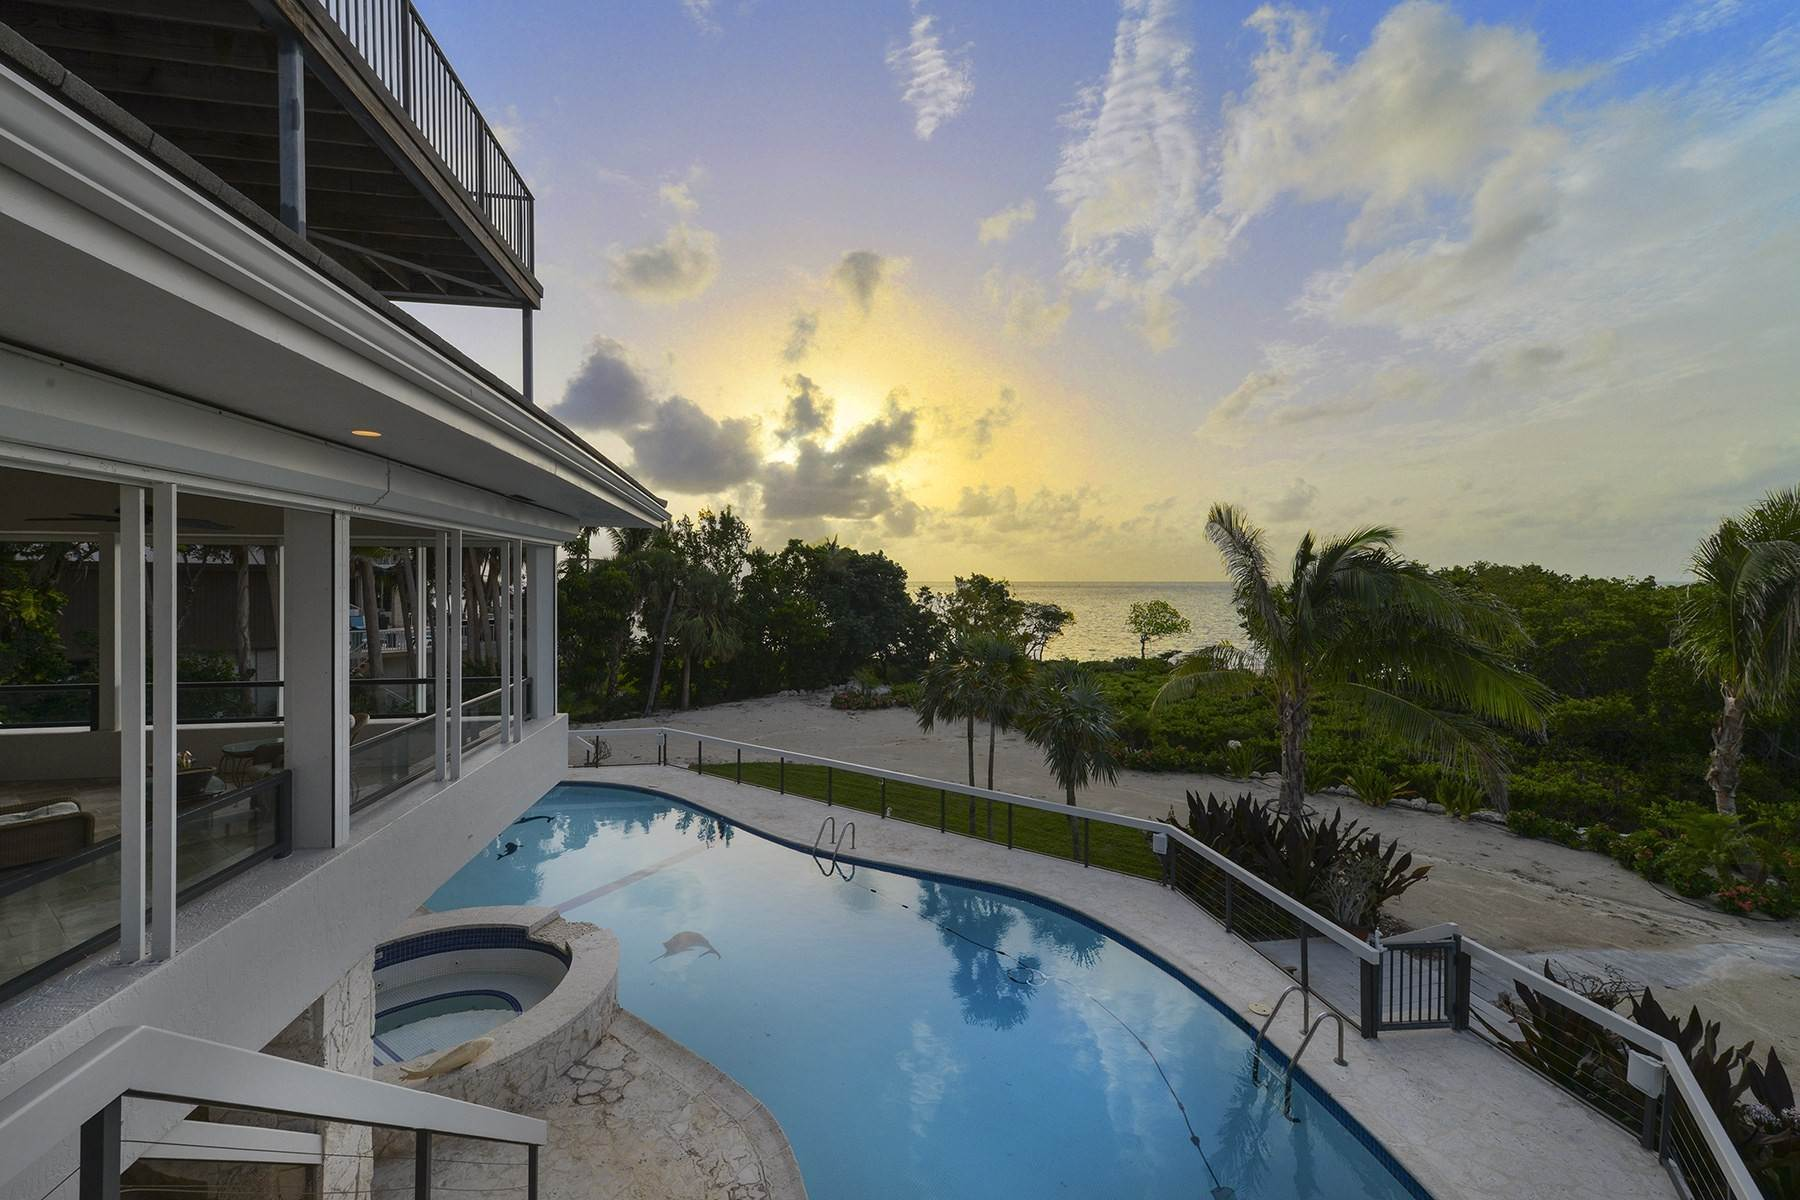 Single Family Homes for Sale at 19 Sunrise Cay Drive, Key Largo, FL 19 Sunrise Cay Drive Key Largo, Florida 33037 United States